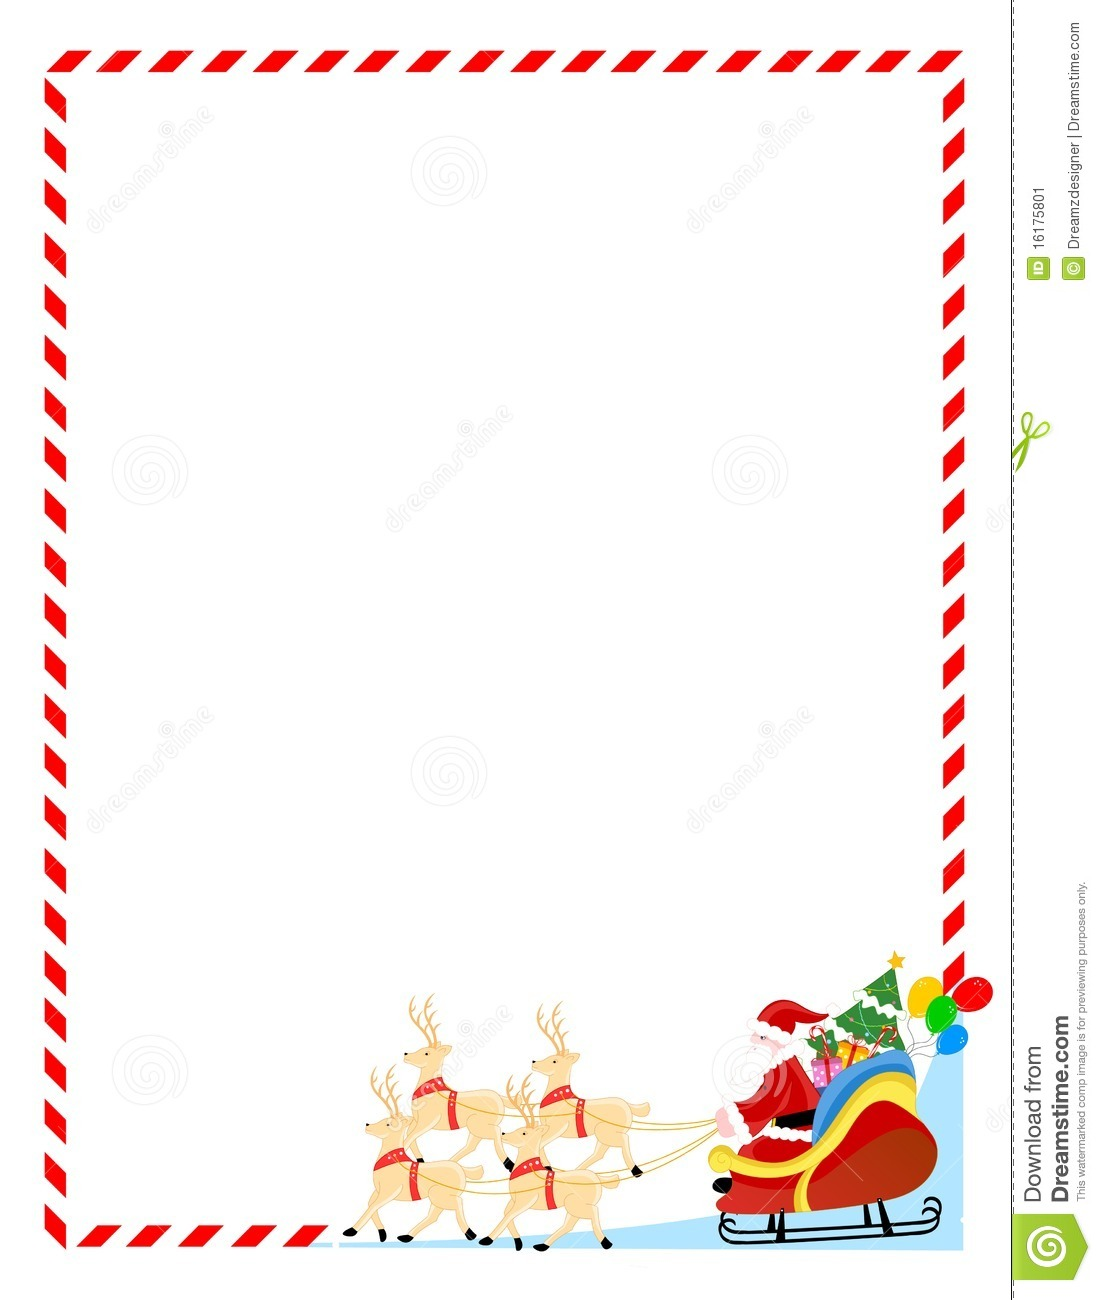 Santa Claus On A Sledge With Cute Deers Colorful Christmas Border